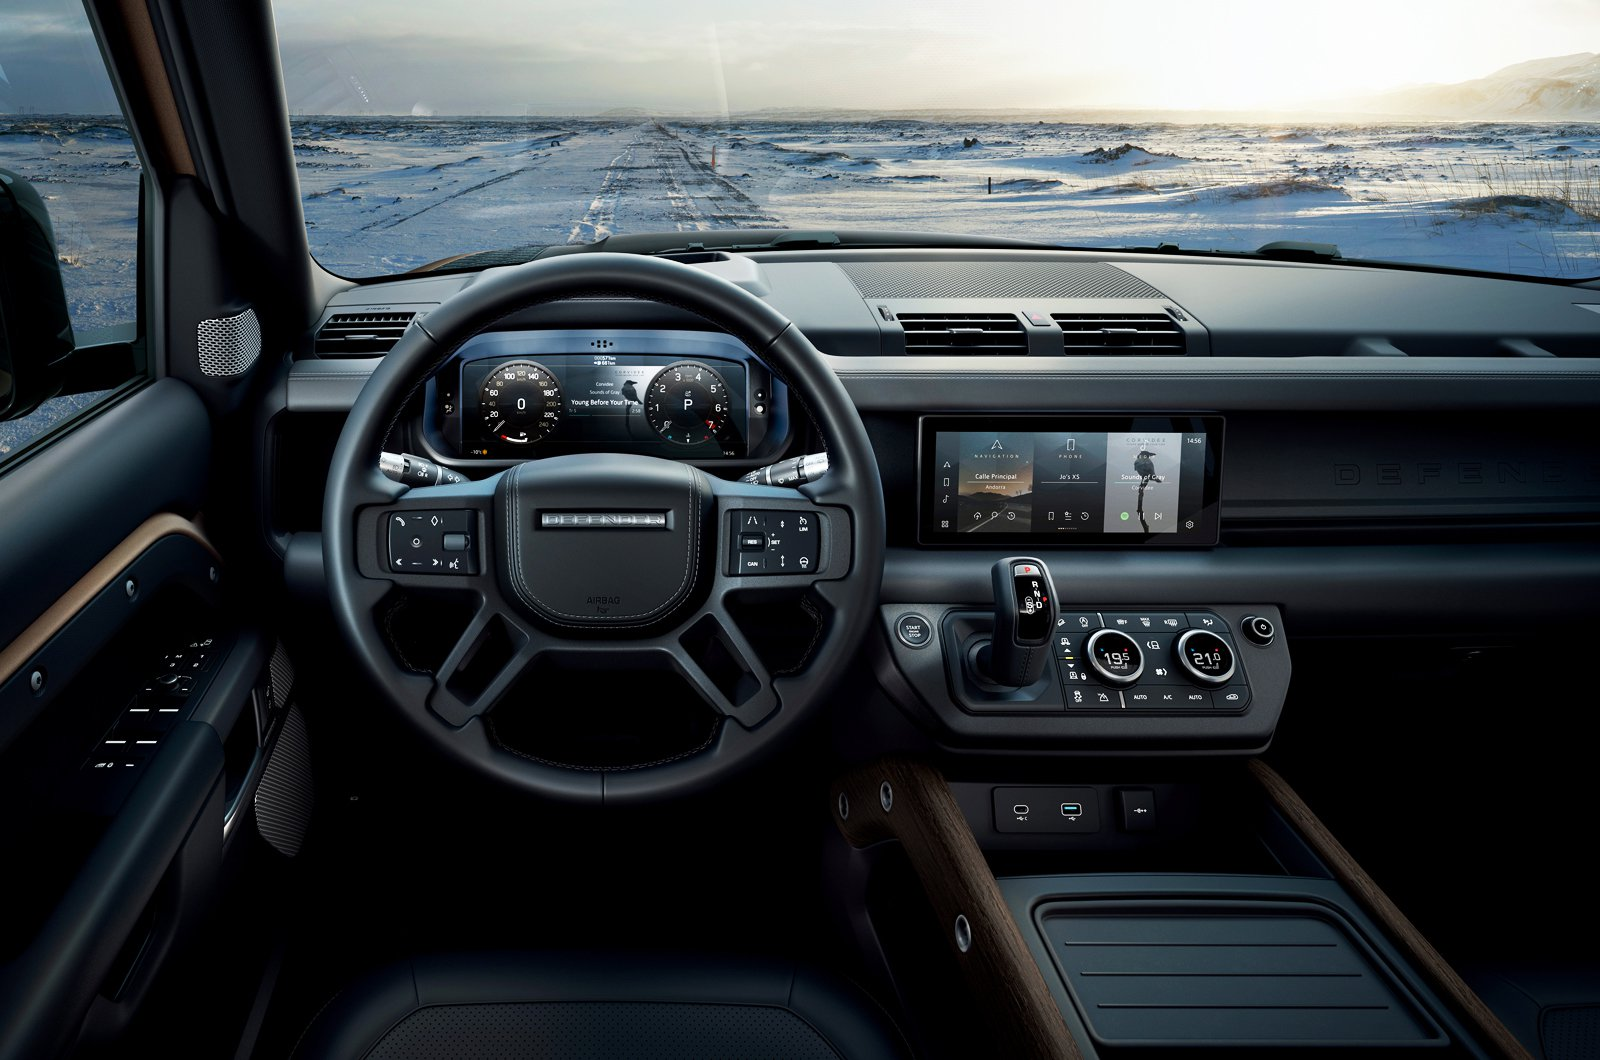 2020 Land Rover Defender dashboard